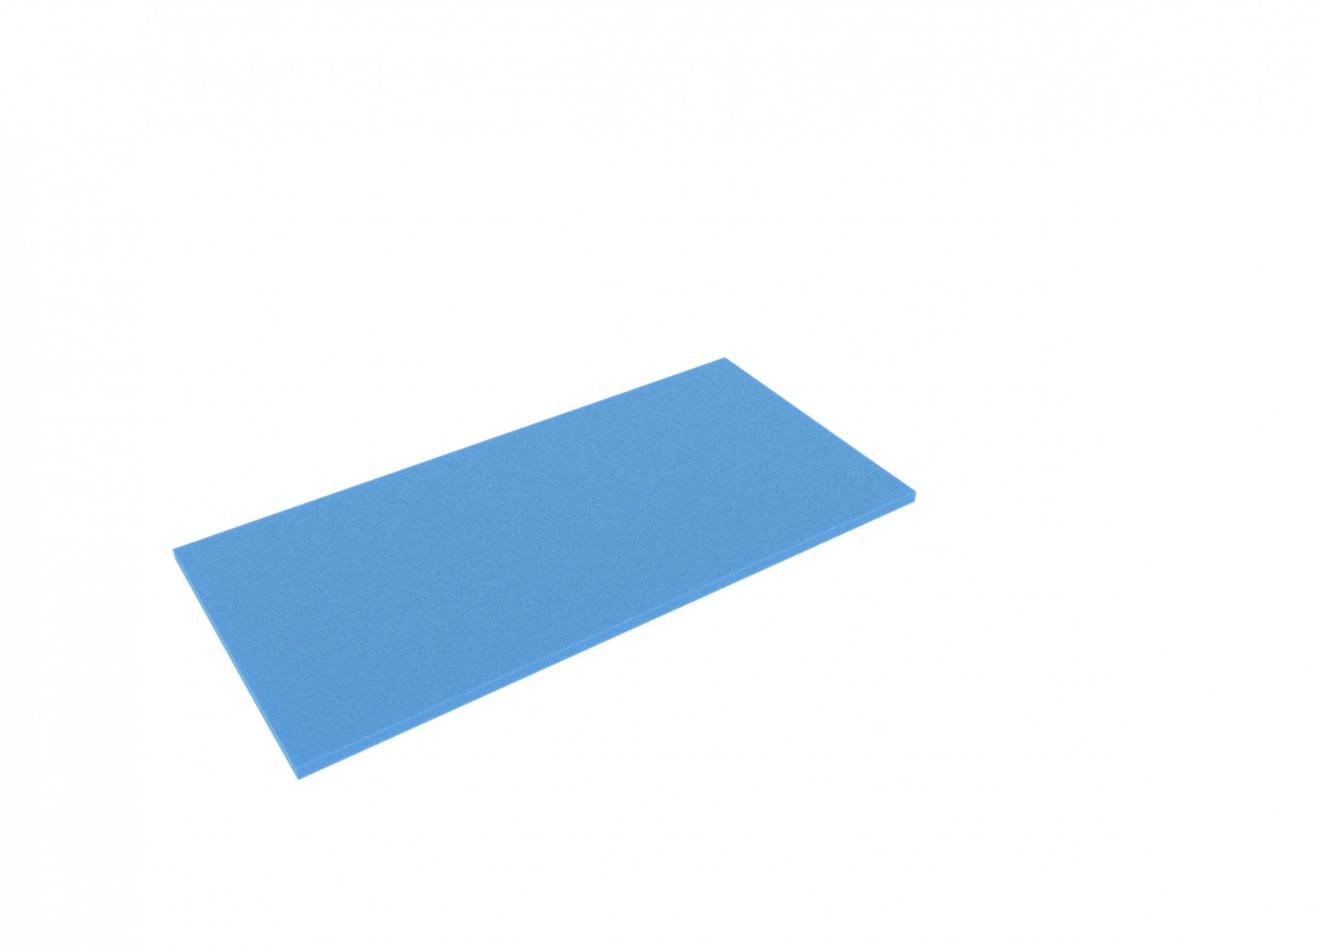 AABA010blue 500 mm x 250 mm x 10 mm colored foam for Shadowboard blue